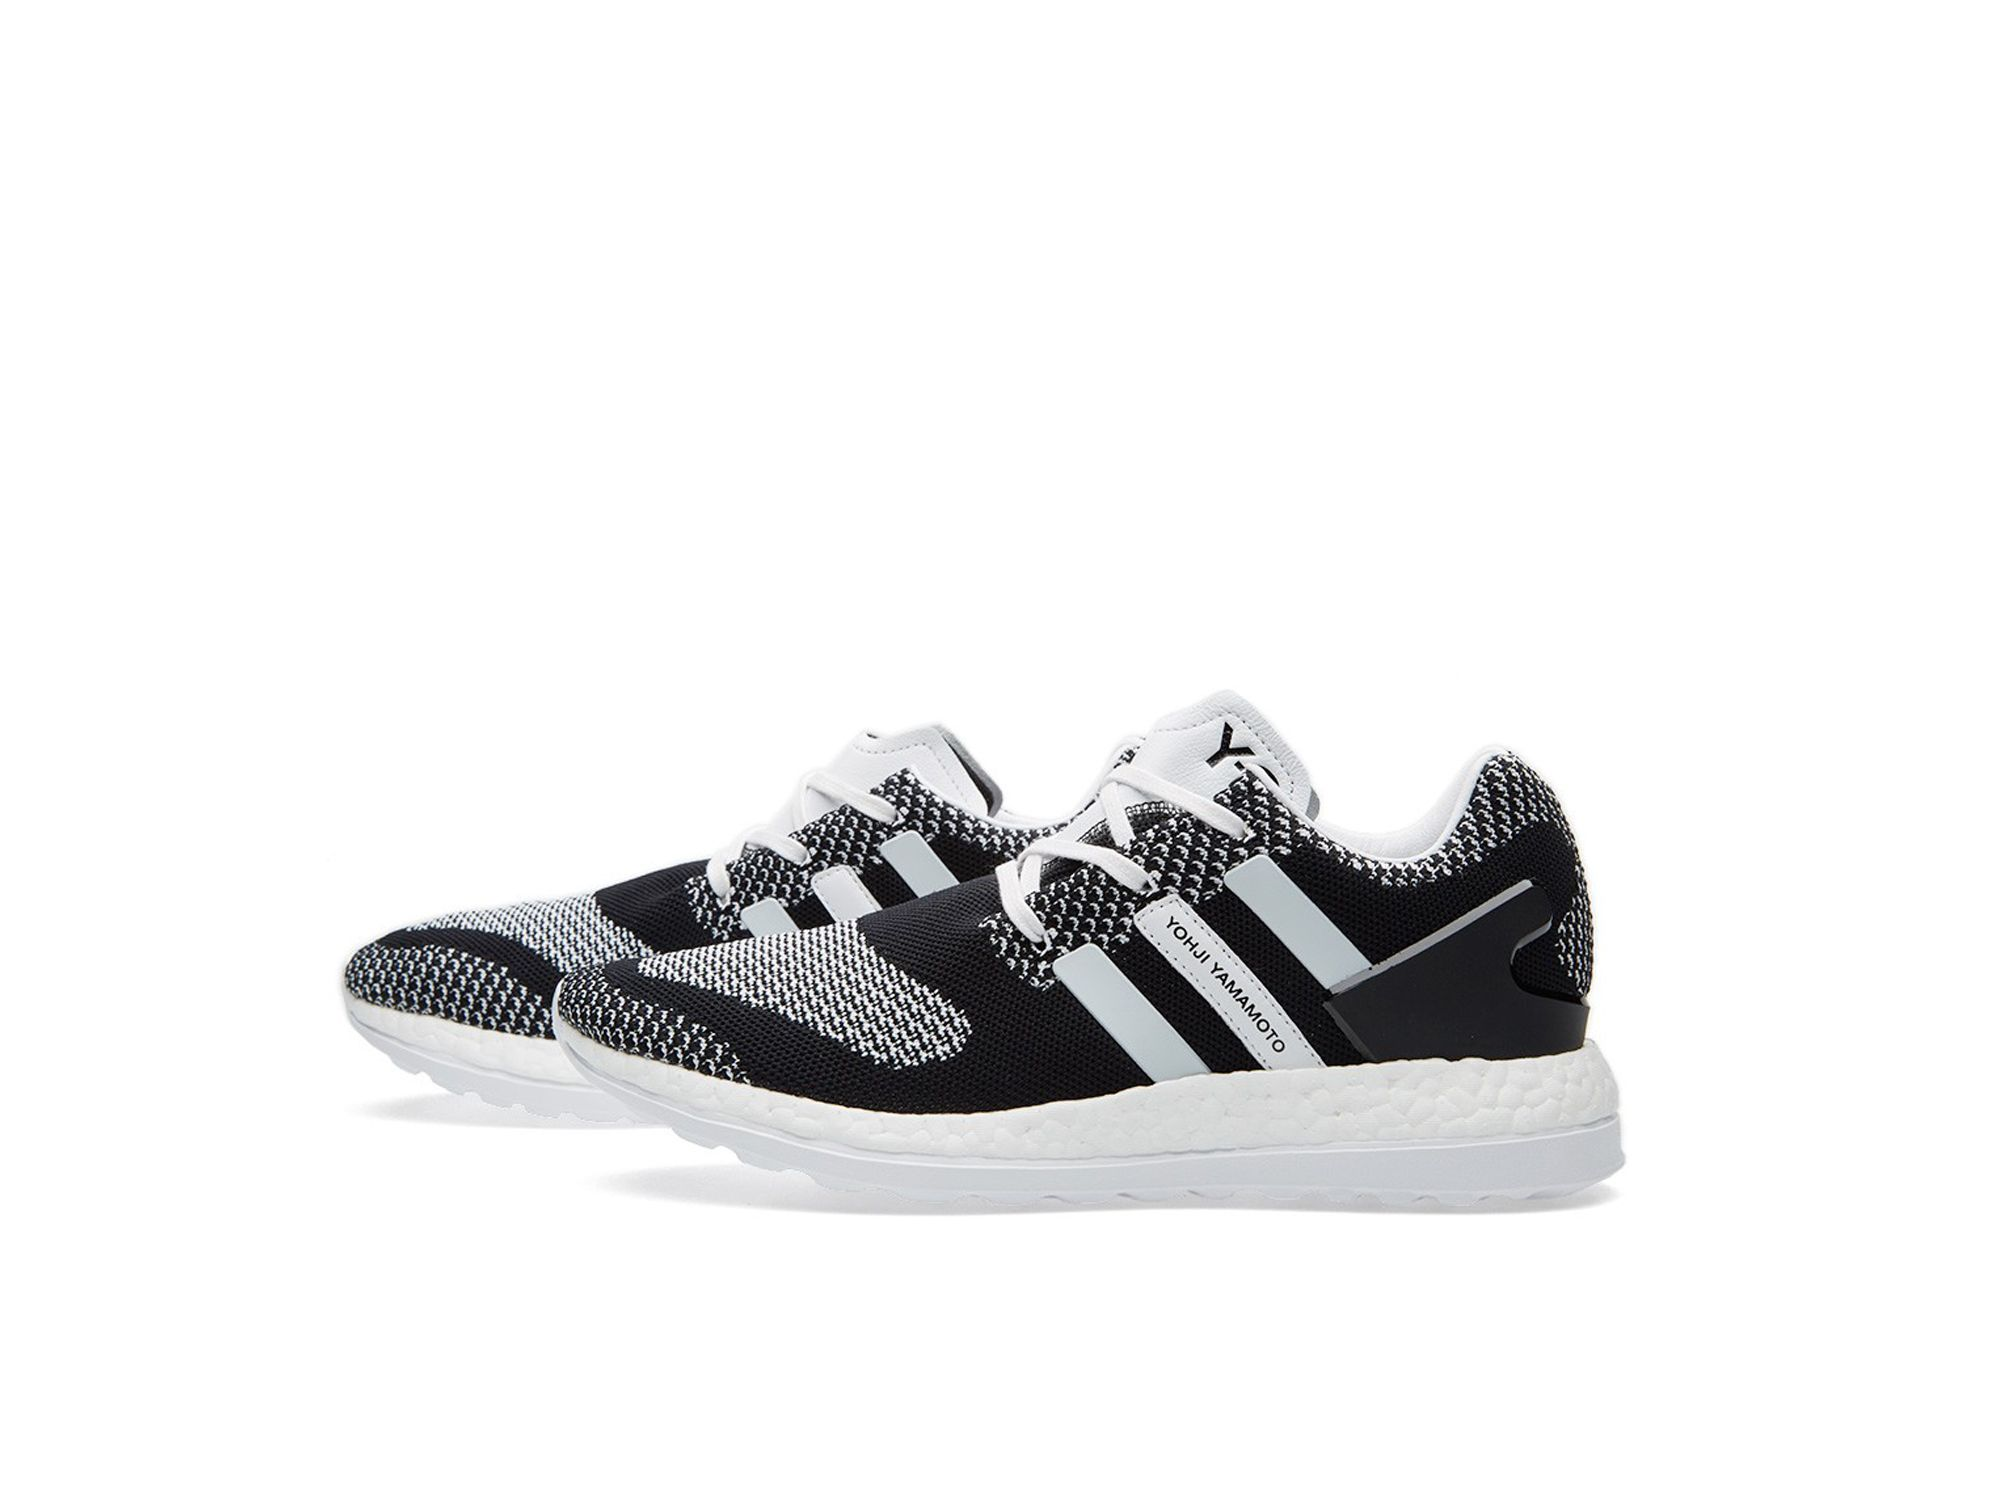 ADIDAS Archives London Trend